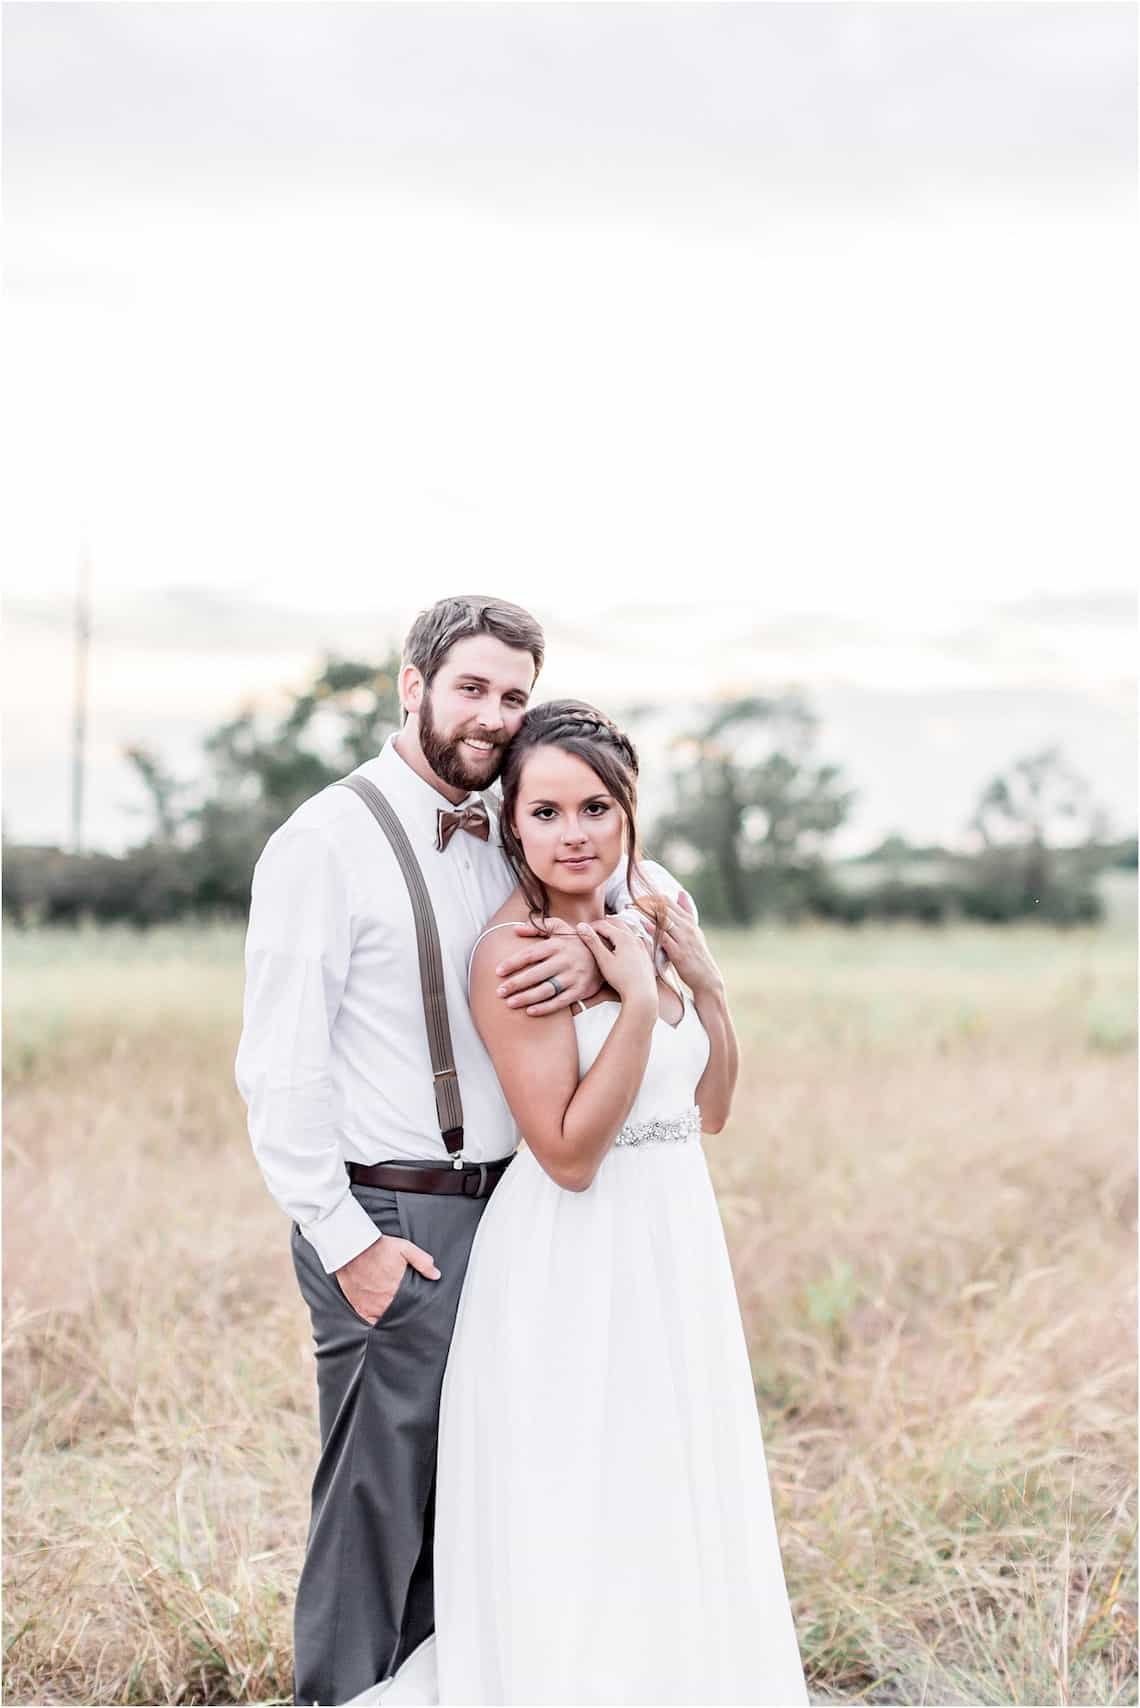 Snuggling Bride and Groom Standing in Field